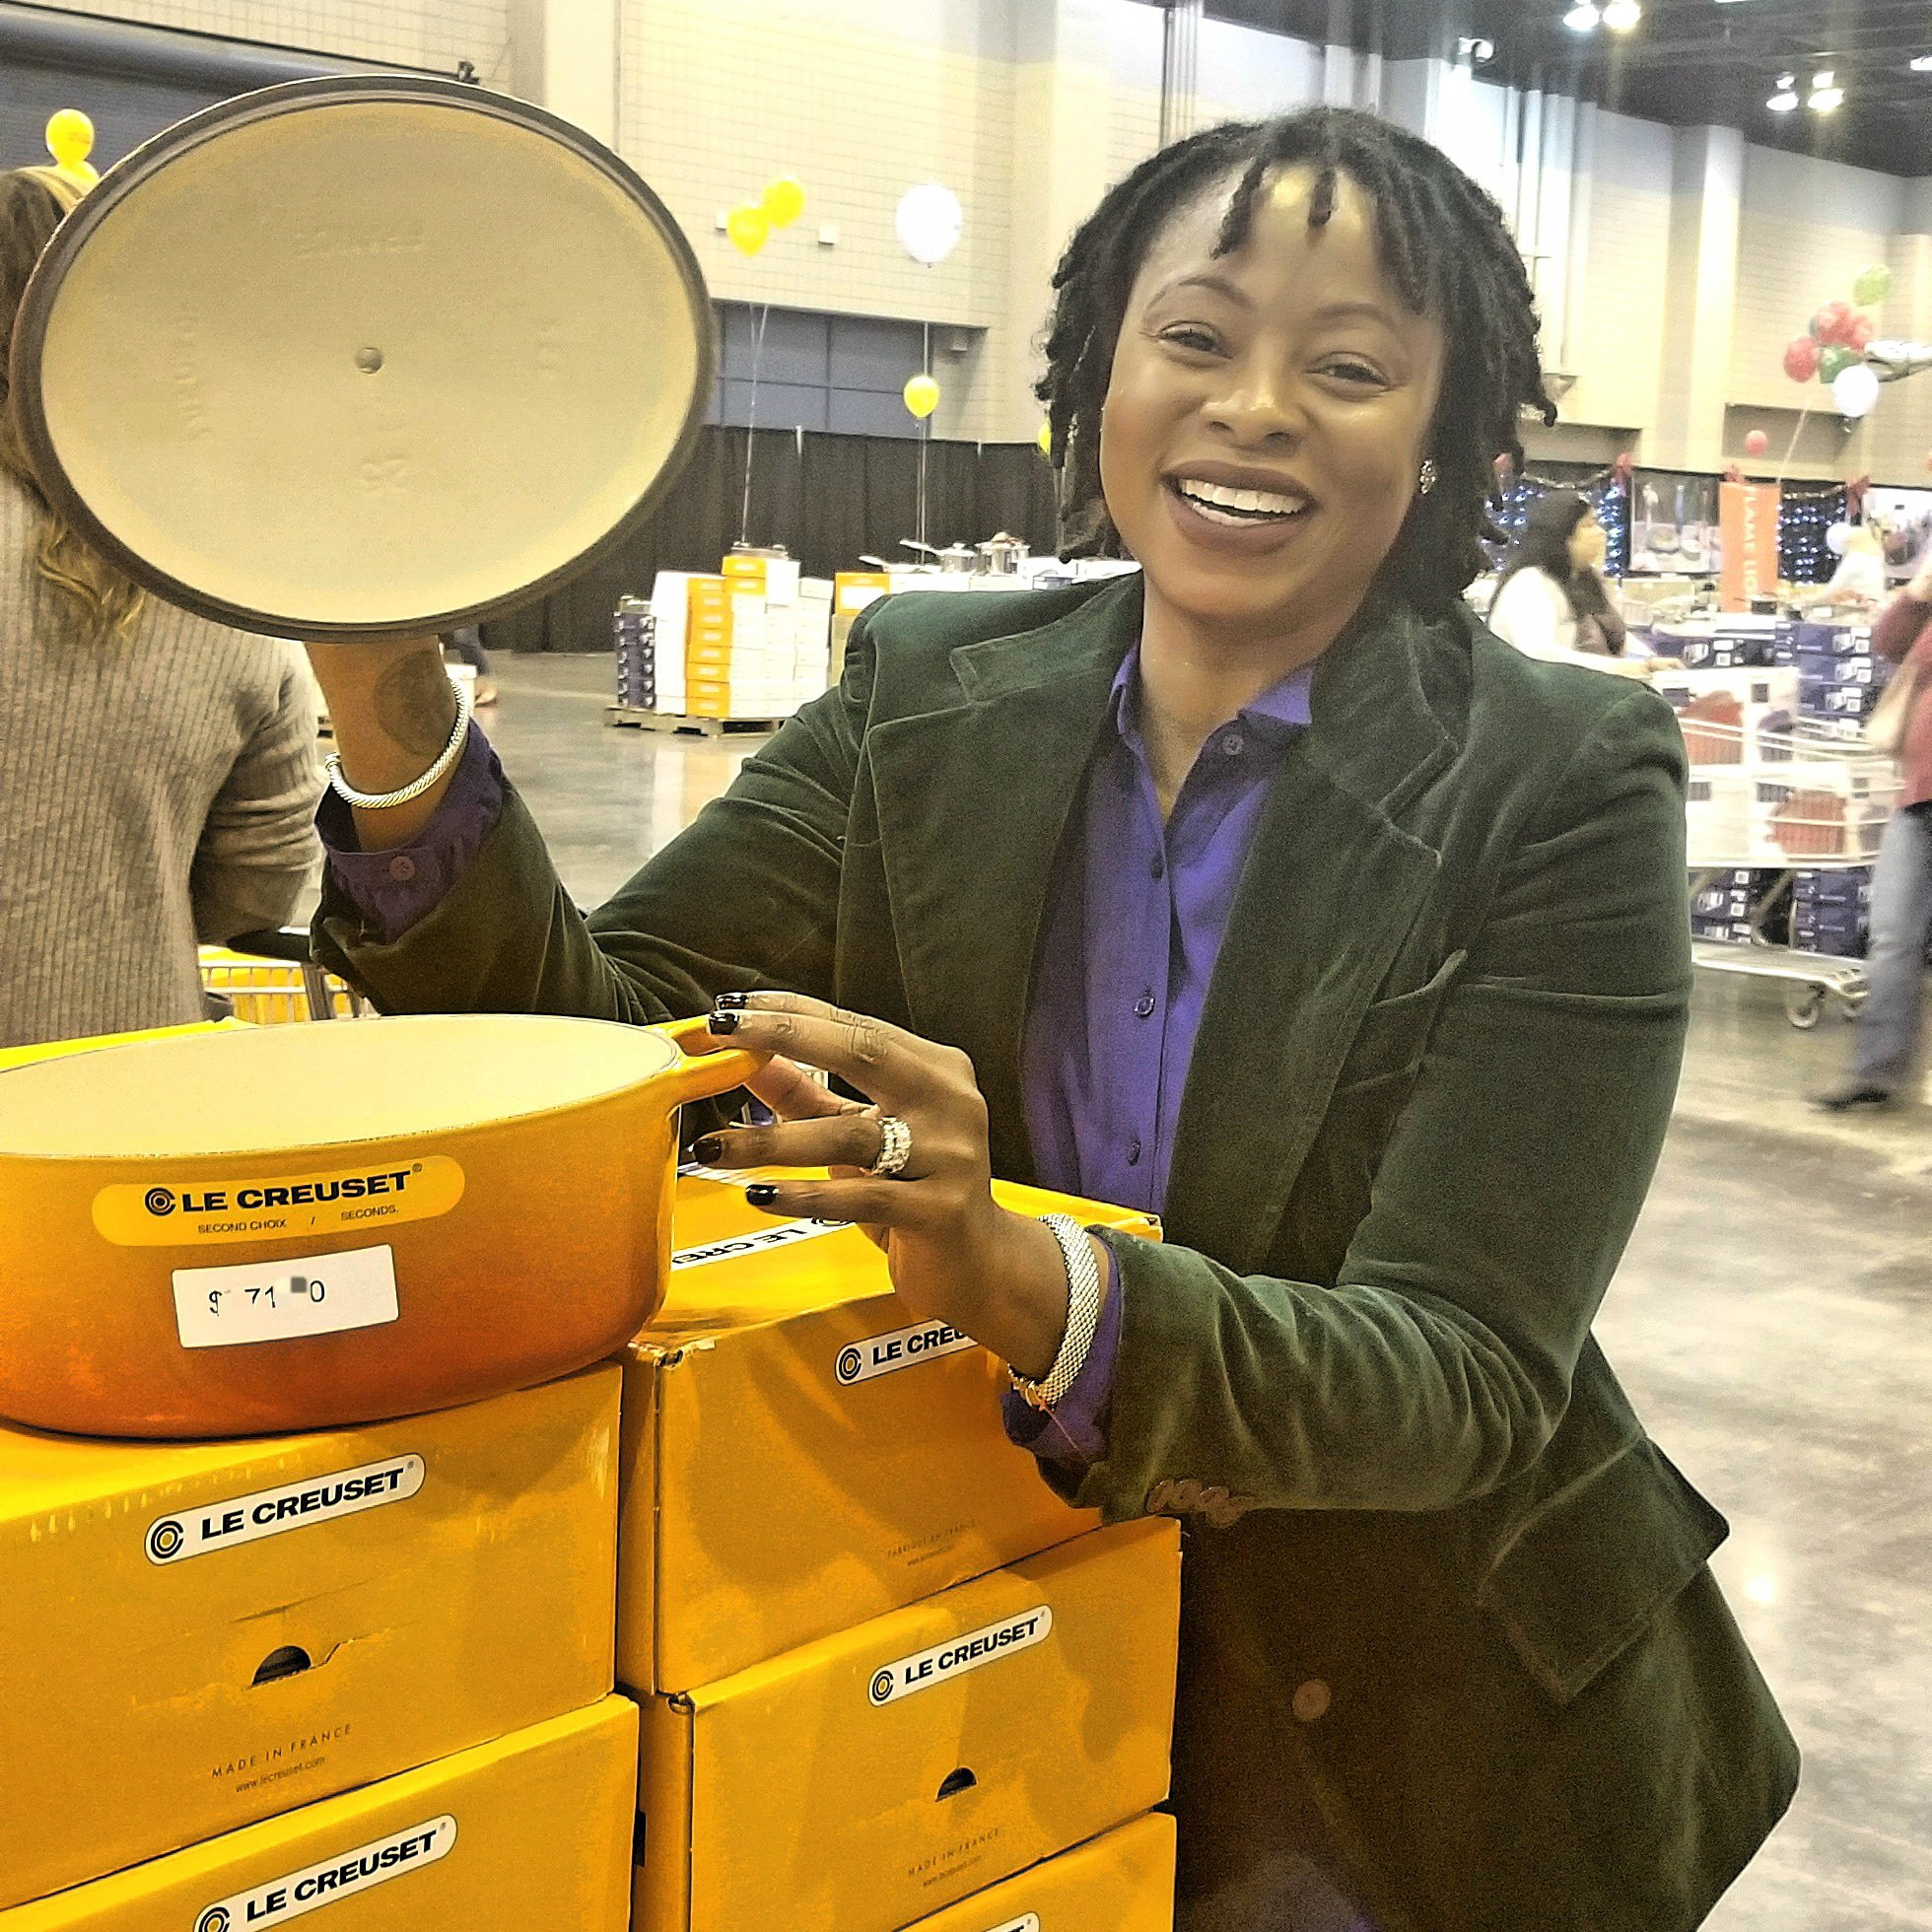 Le creuset factory to table